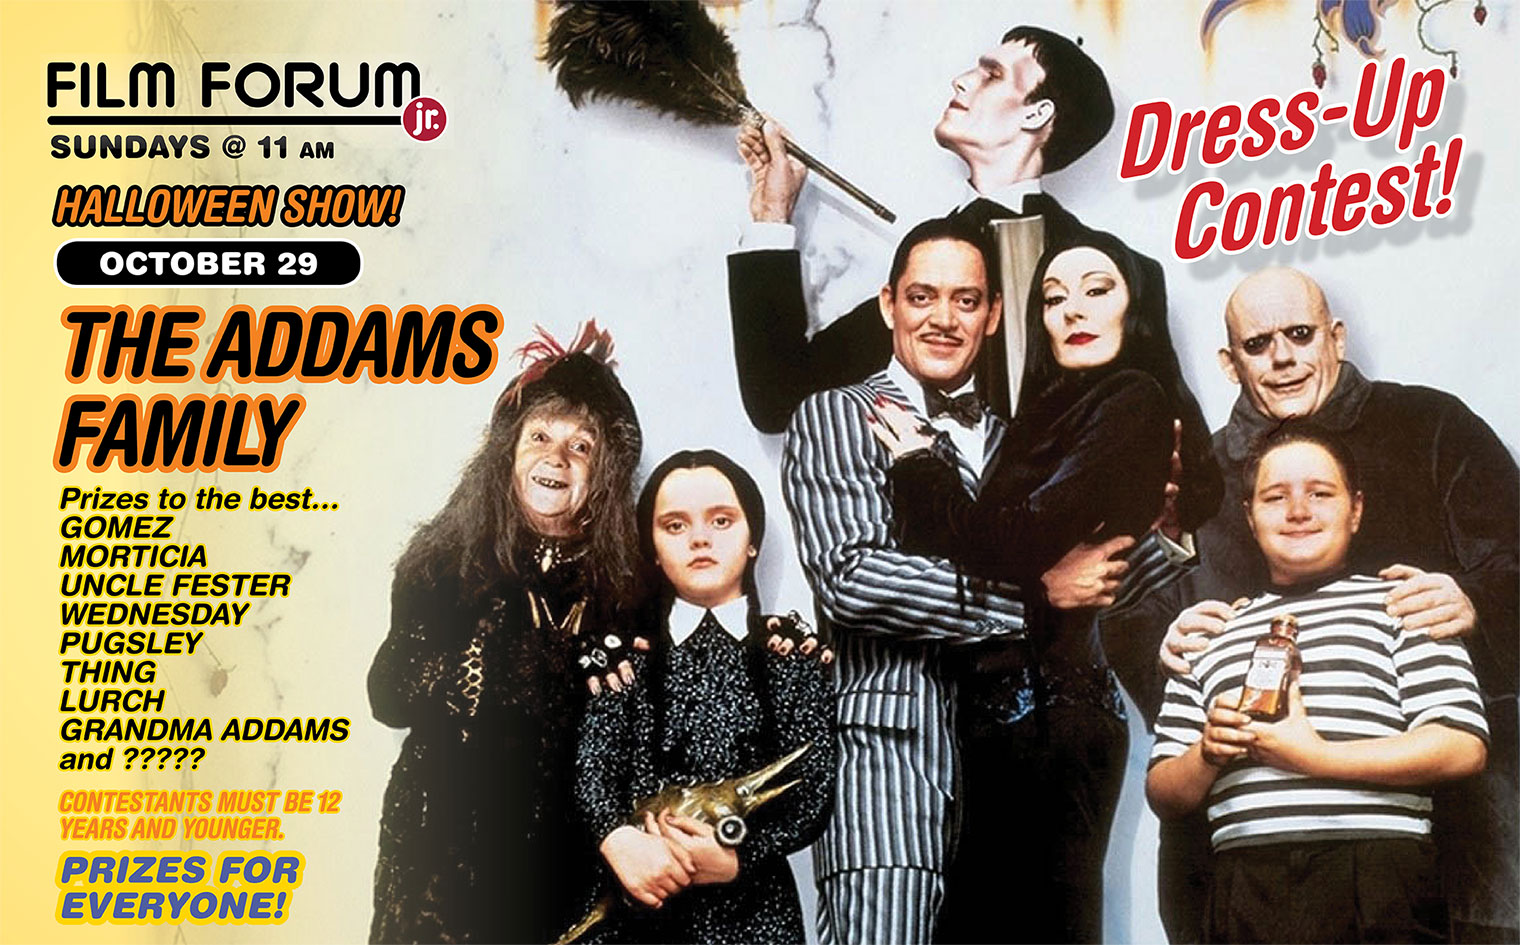 THE ADDAMS FAMILY Dress-Up contest